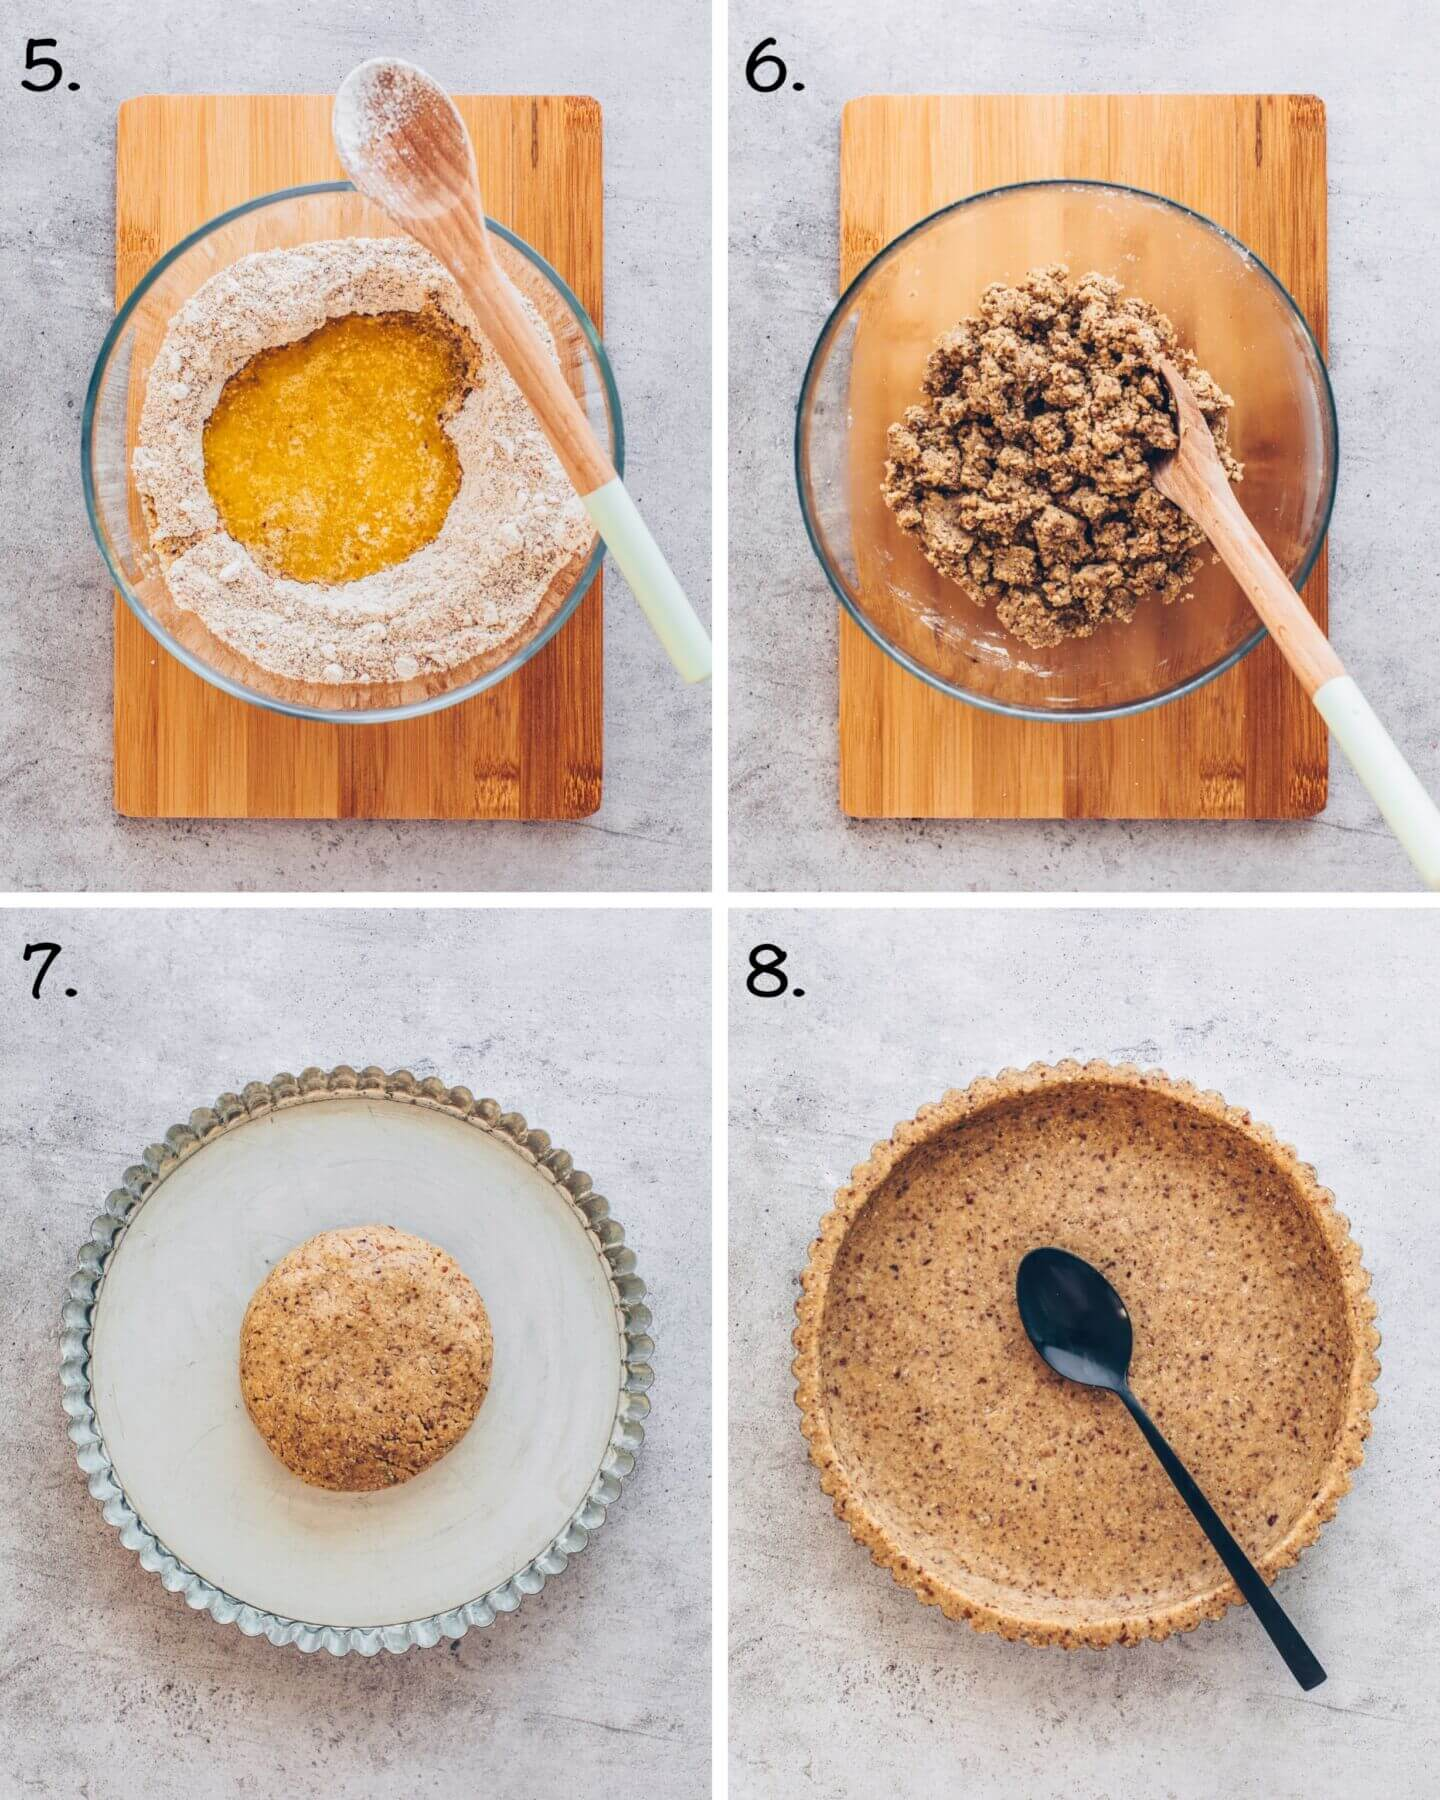 Vegan Tart Crust with gluten-free oats, almonds, and maple syrup (step-by-step instruction)